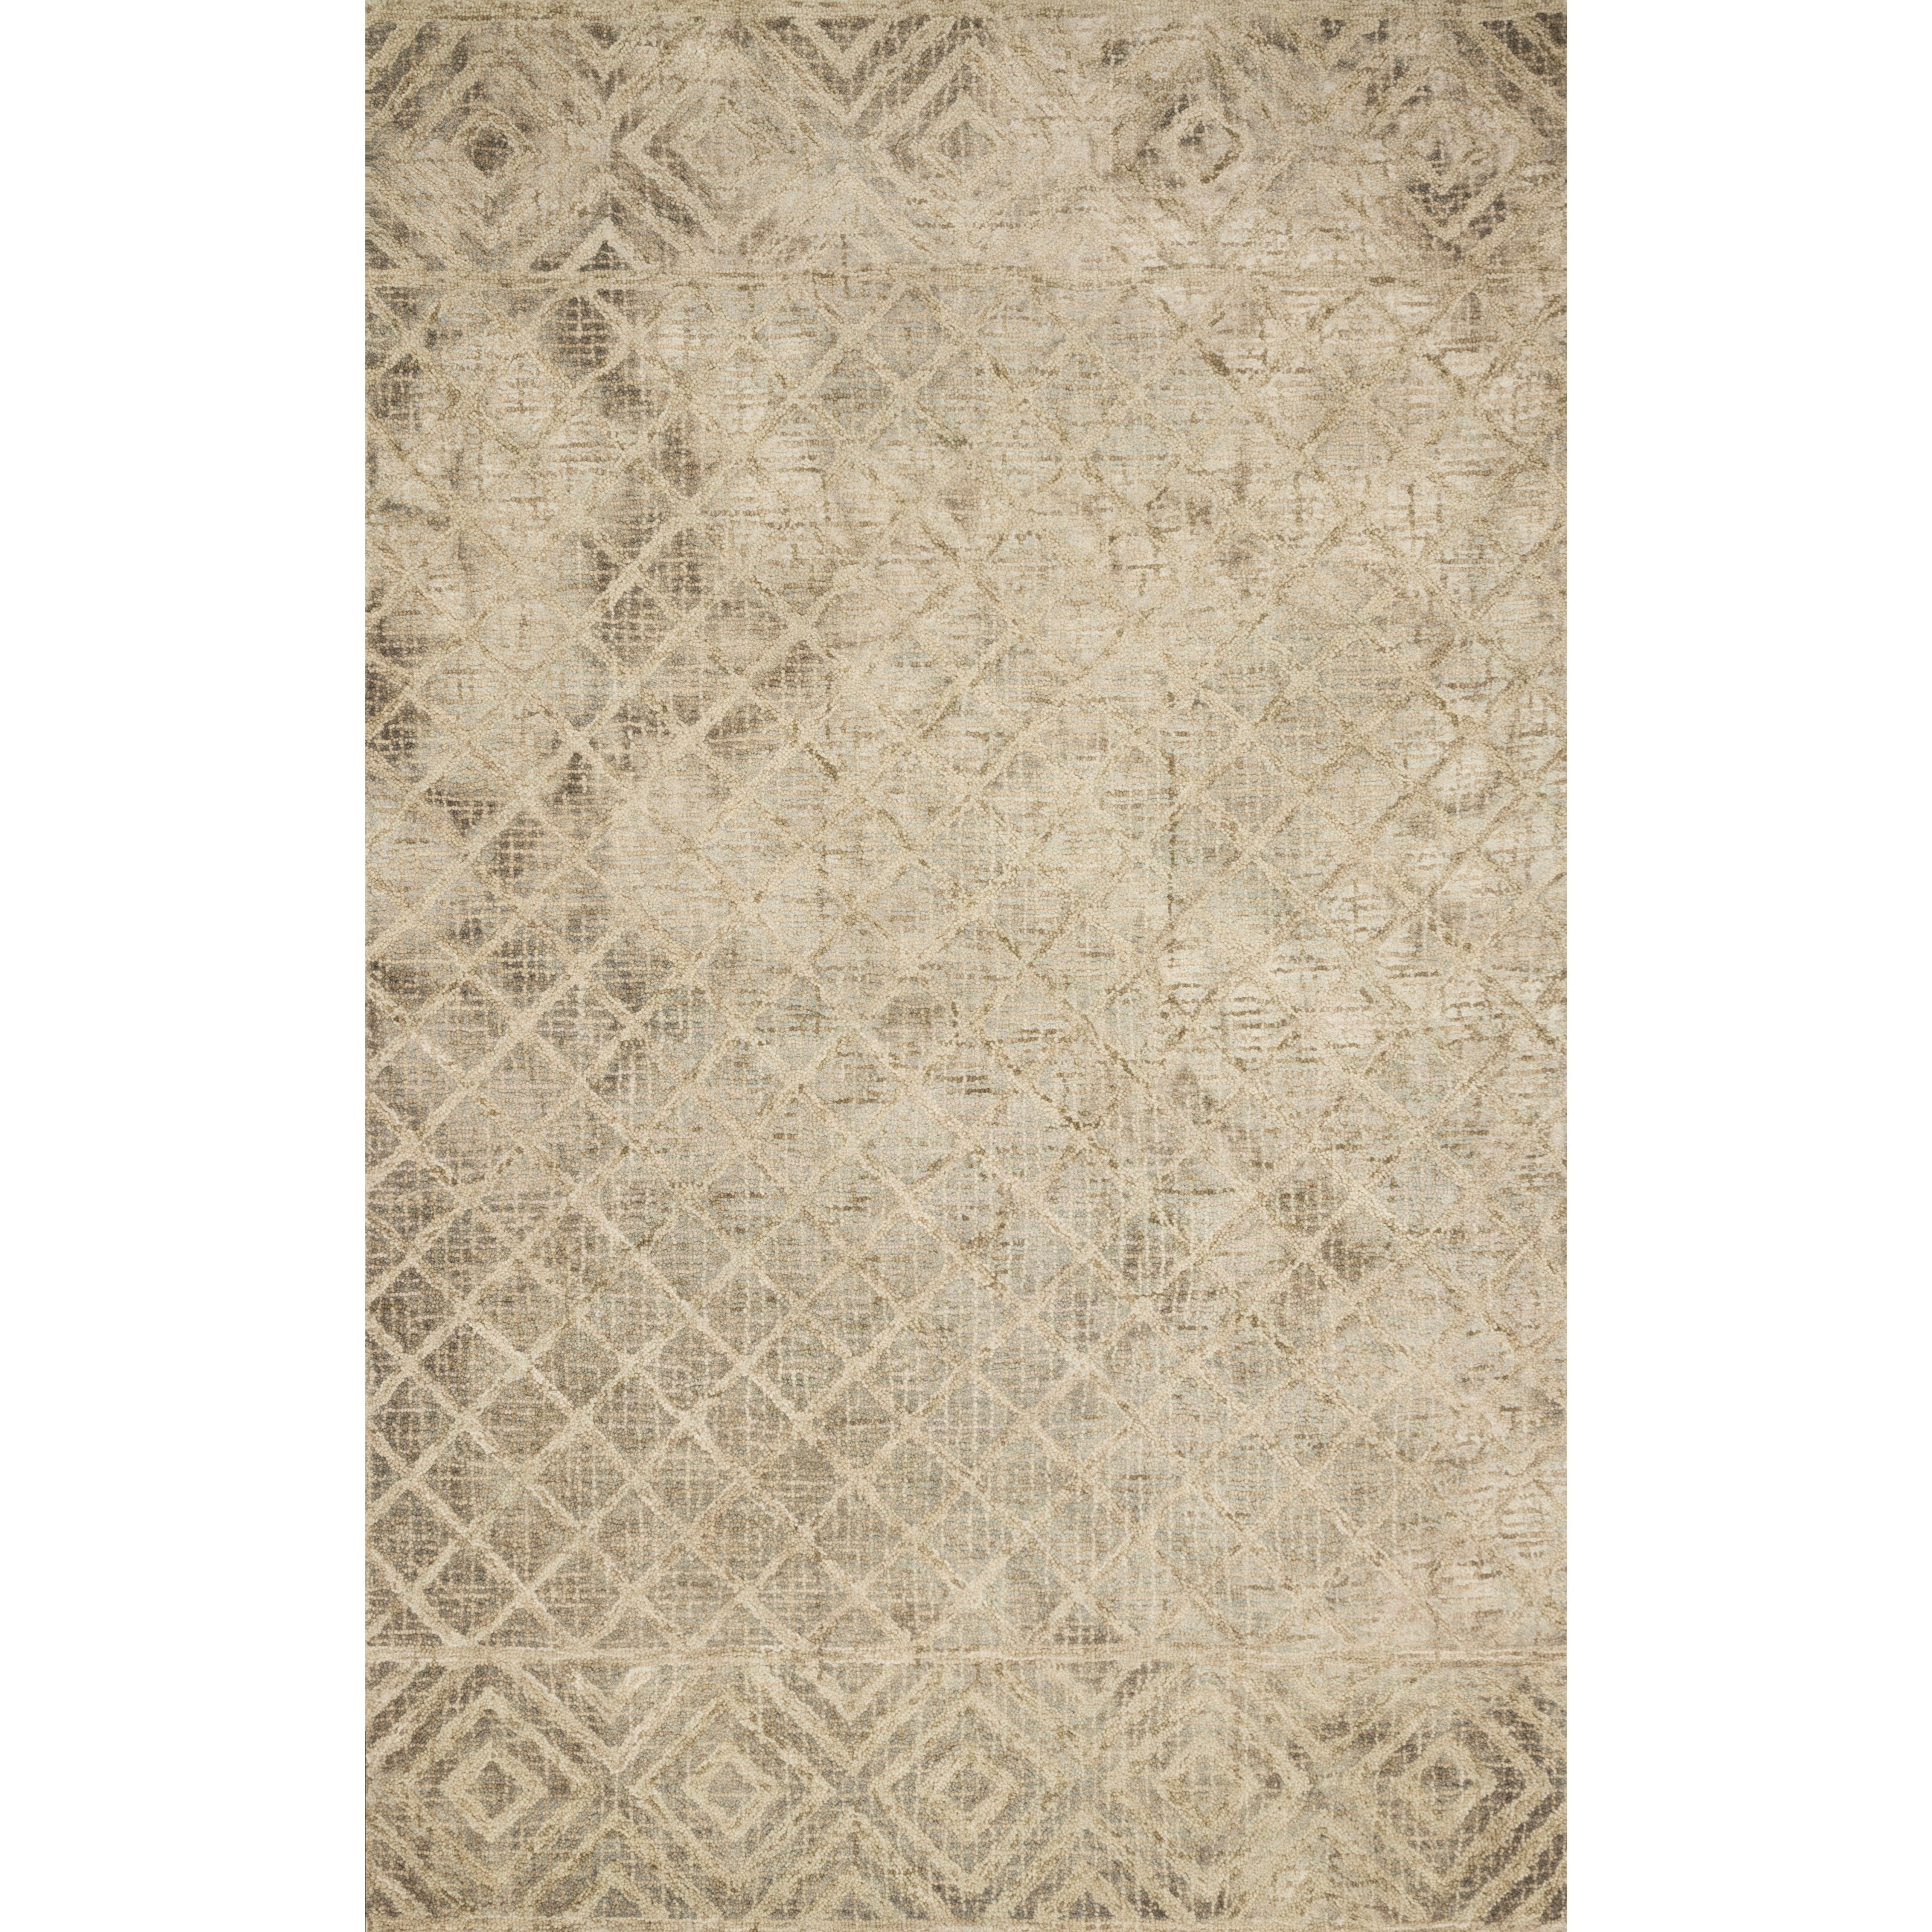 """Simone 3'6"""" x 5'6"""" Sand Rug by Loloi Rugs at Virginia Furniture Market"""